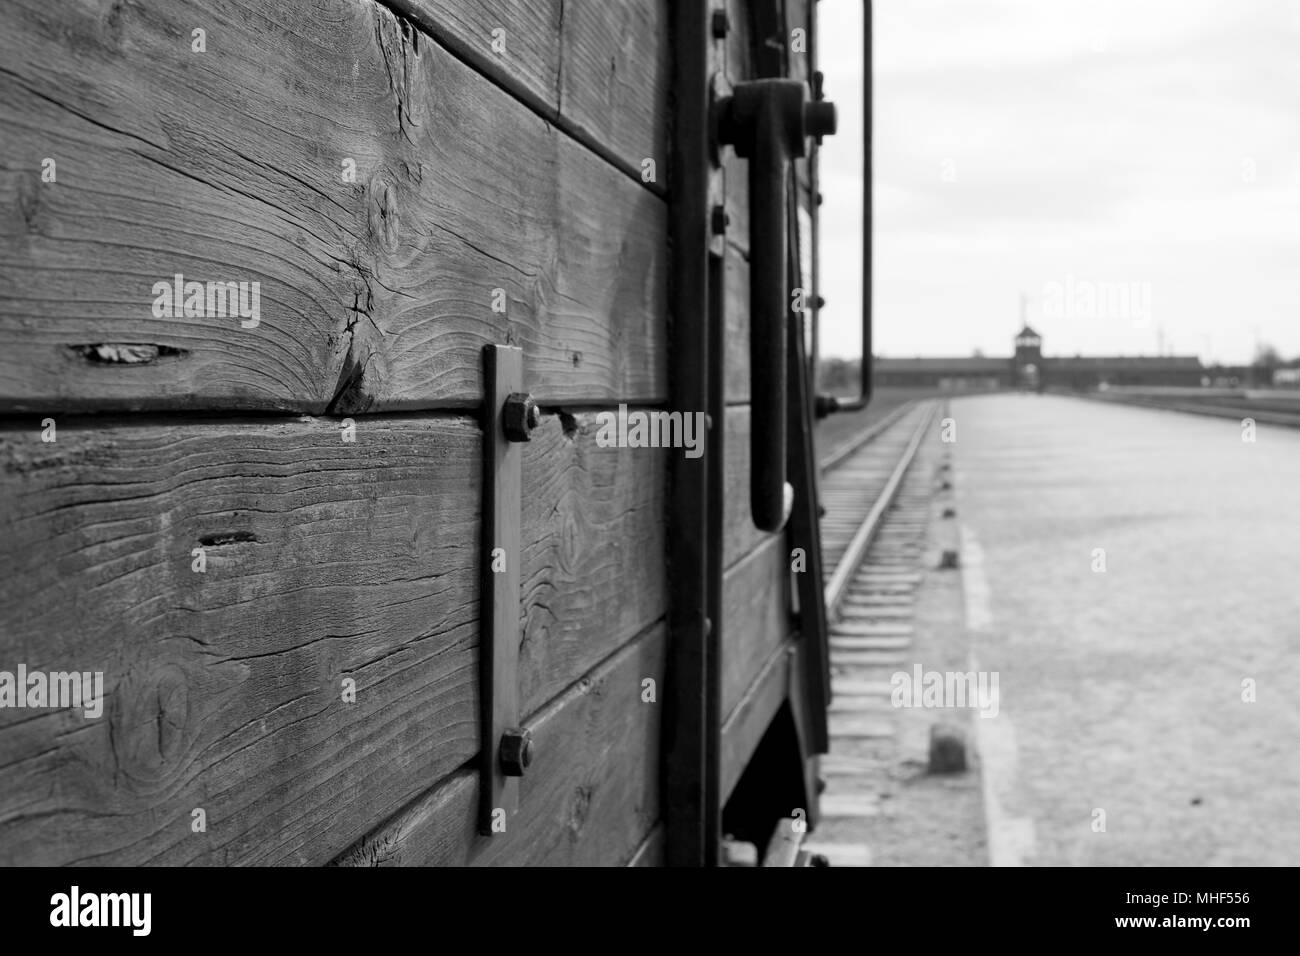 Eentrance to Auschwitz Birkenau Concentration Camp. In foreground is railway cattle car used to bring victims to the gas chambers. Monochrome photo. - Stock Image